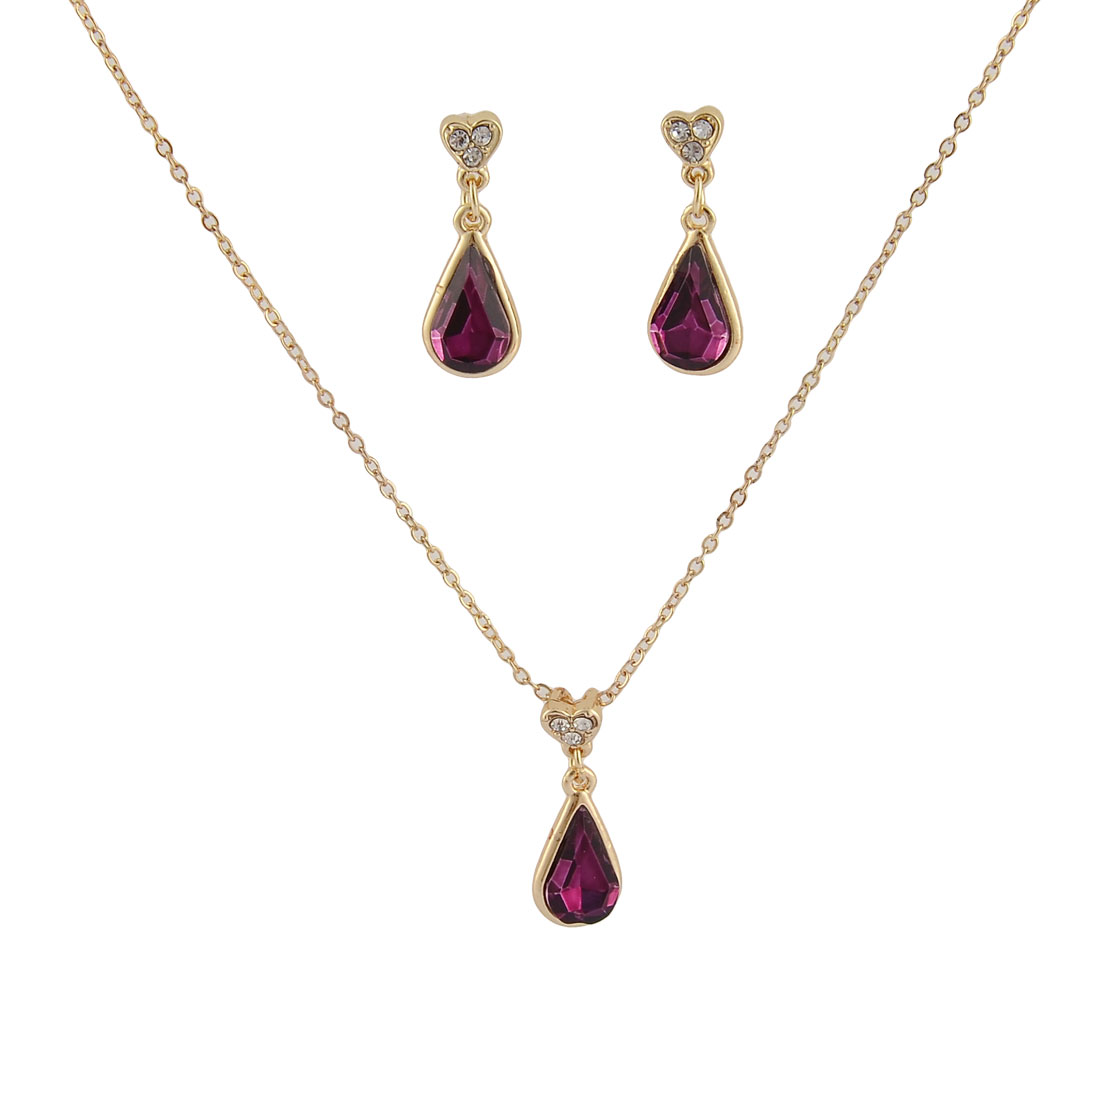 Tear Shaped Faux Crystal Decor Adjustable Chain Jewelry Necklace Earrings Set